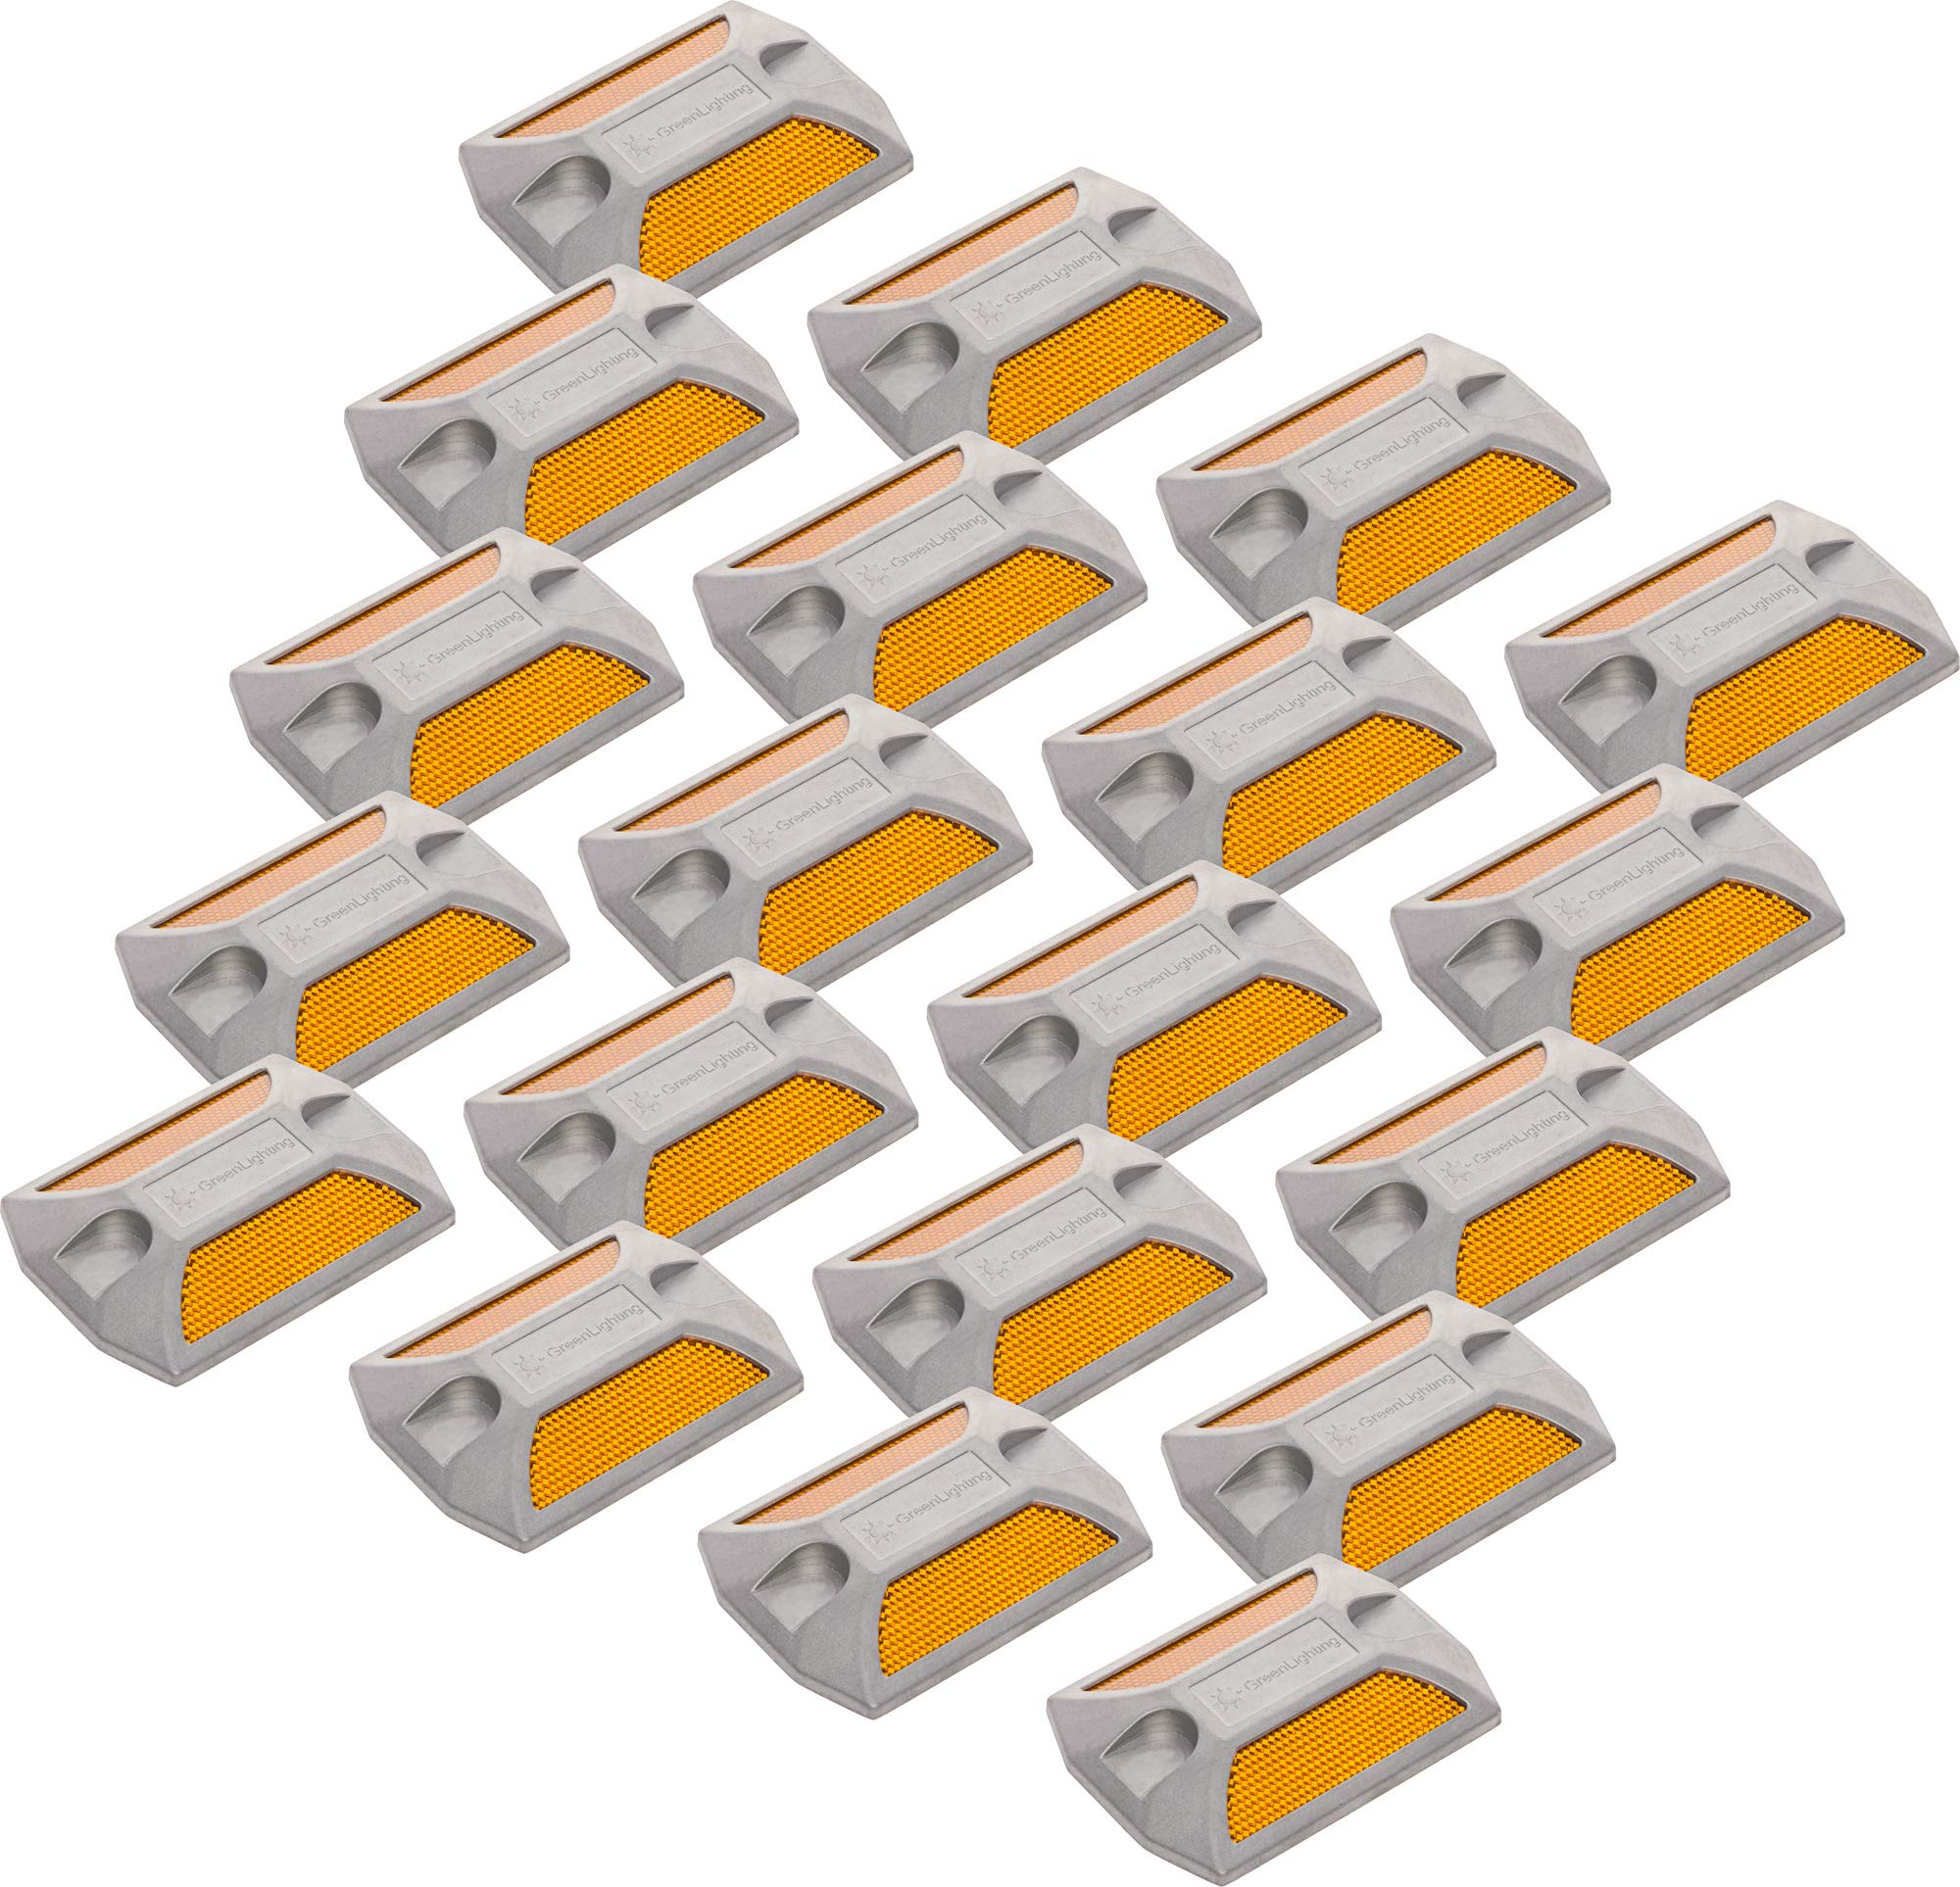 GreenLighting 20 Pack Yellow Reflective Road Studs - Commercial Grade Heavy Duty Aluminum Road Pavement Markers